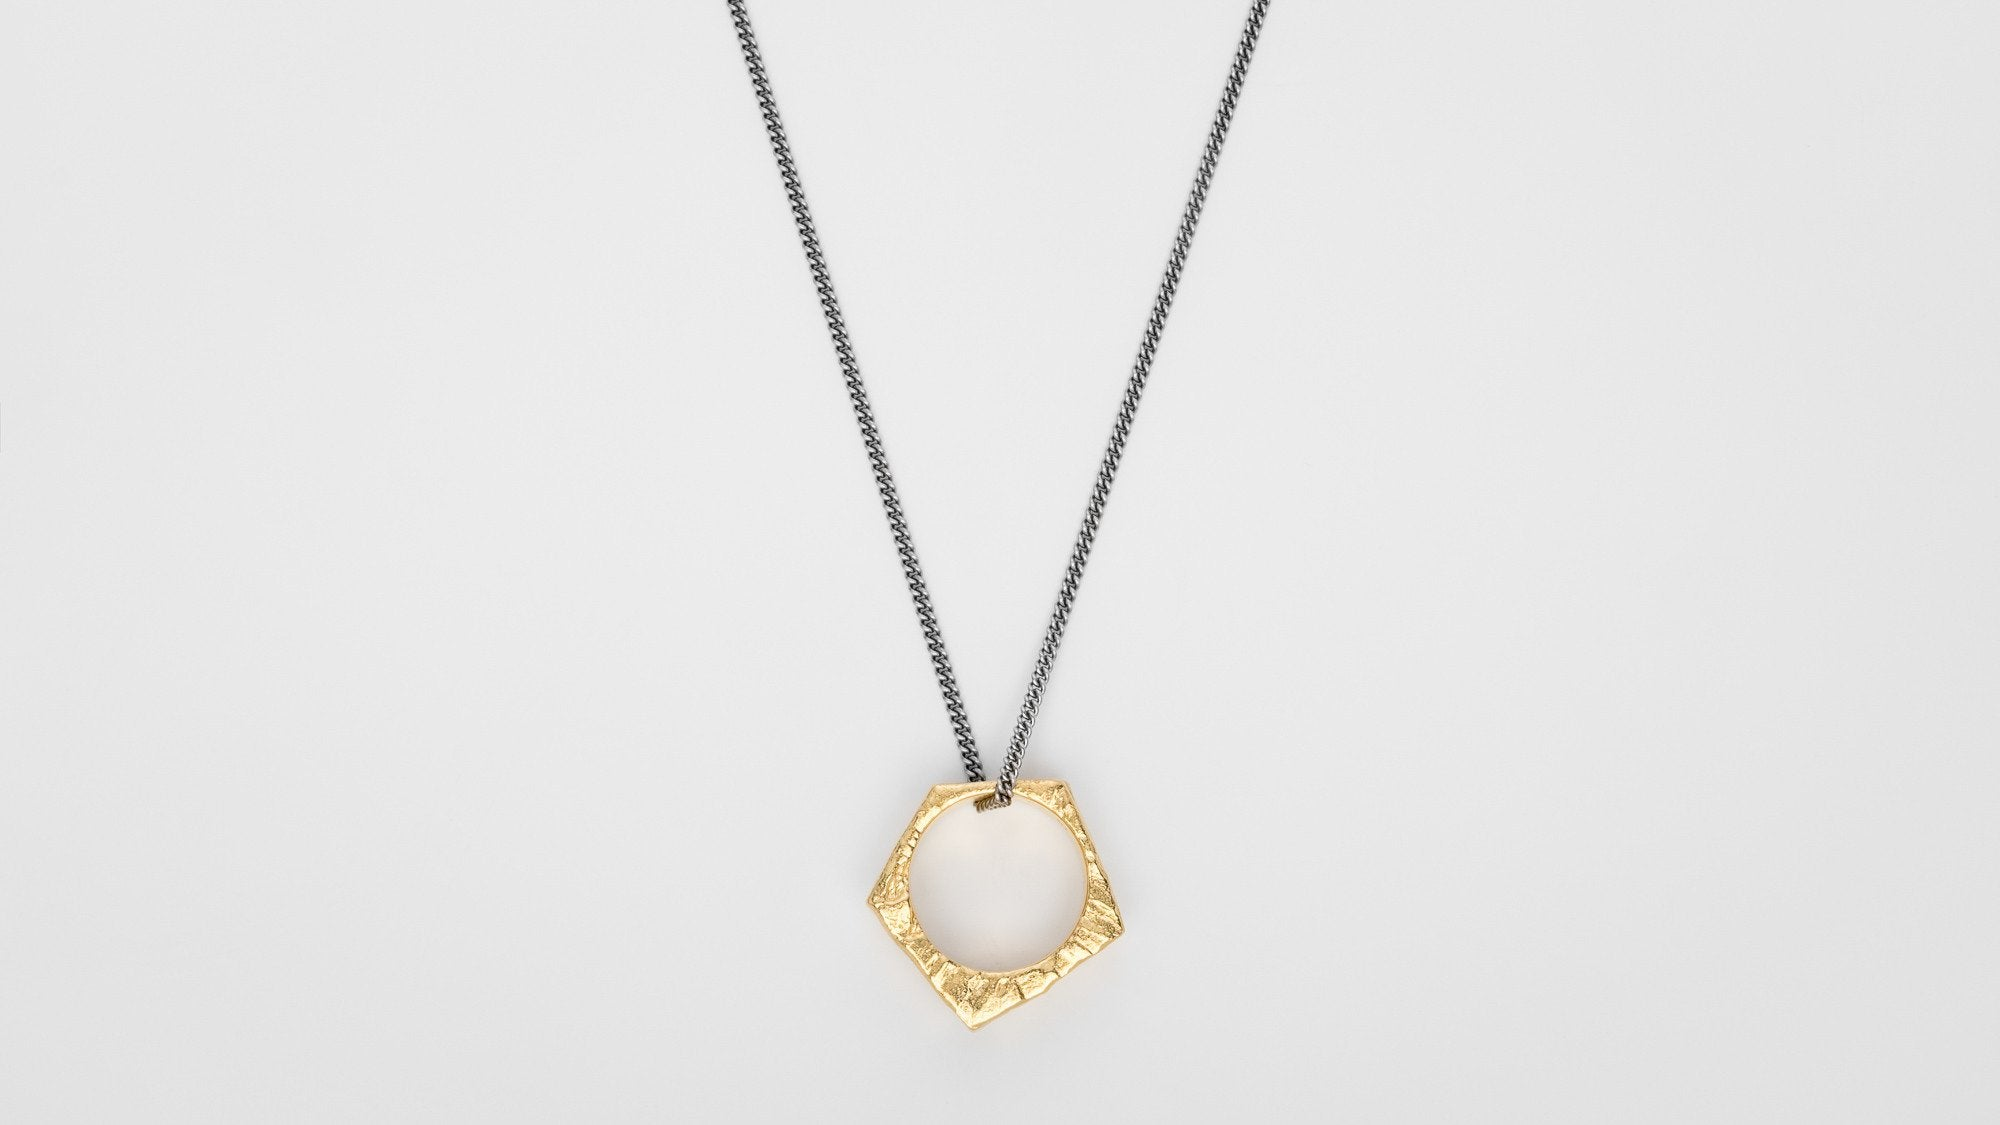 The Quietude Necklace